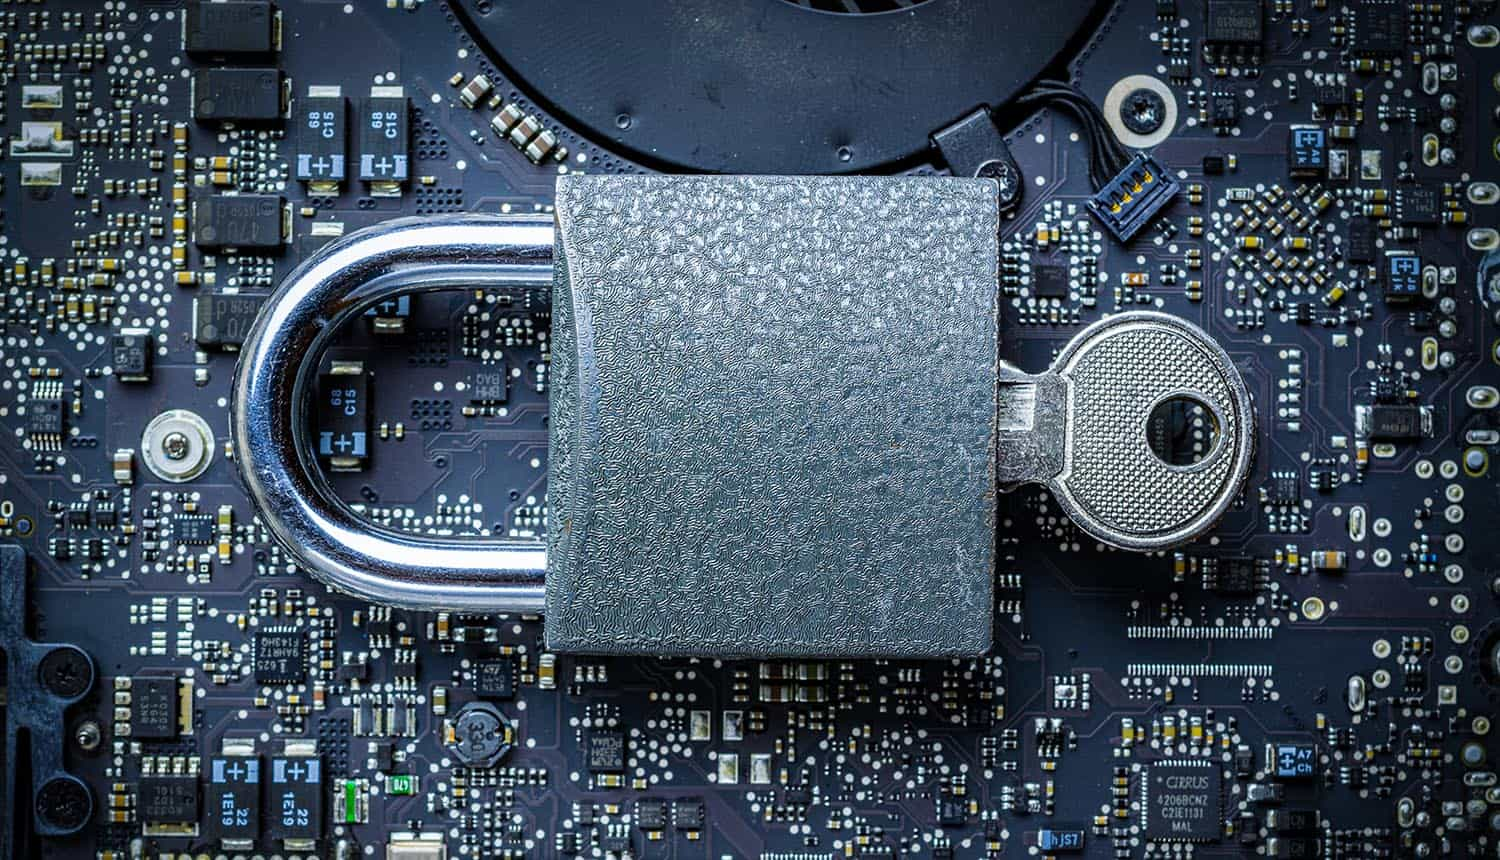 Padlock with key on computer chip showing the new proposed anti-encryption law that requires a backdoor on electronic device